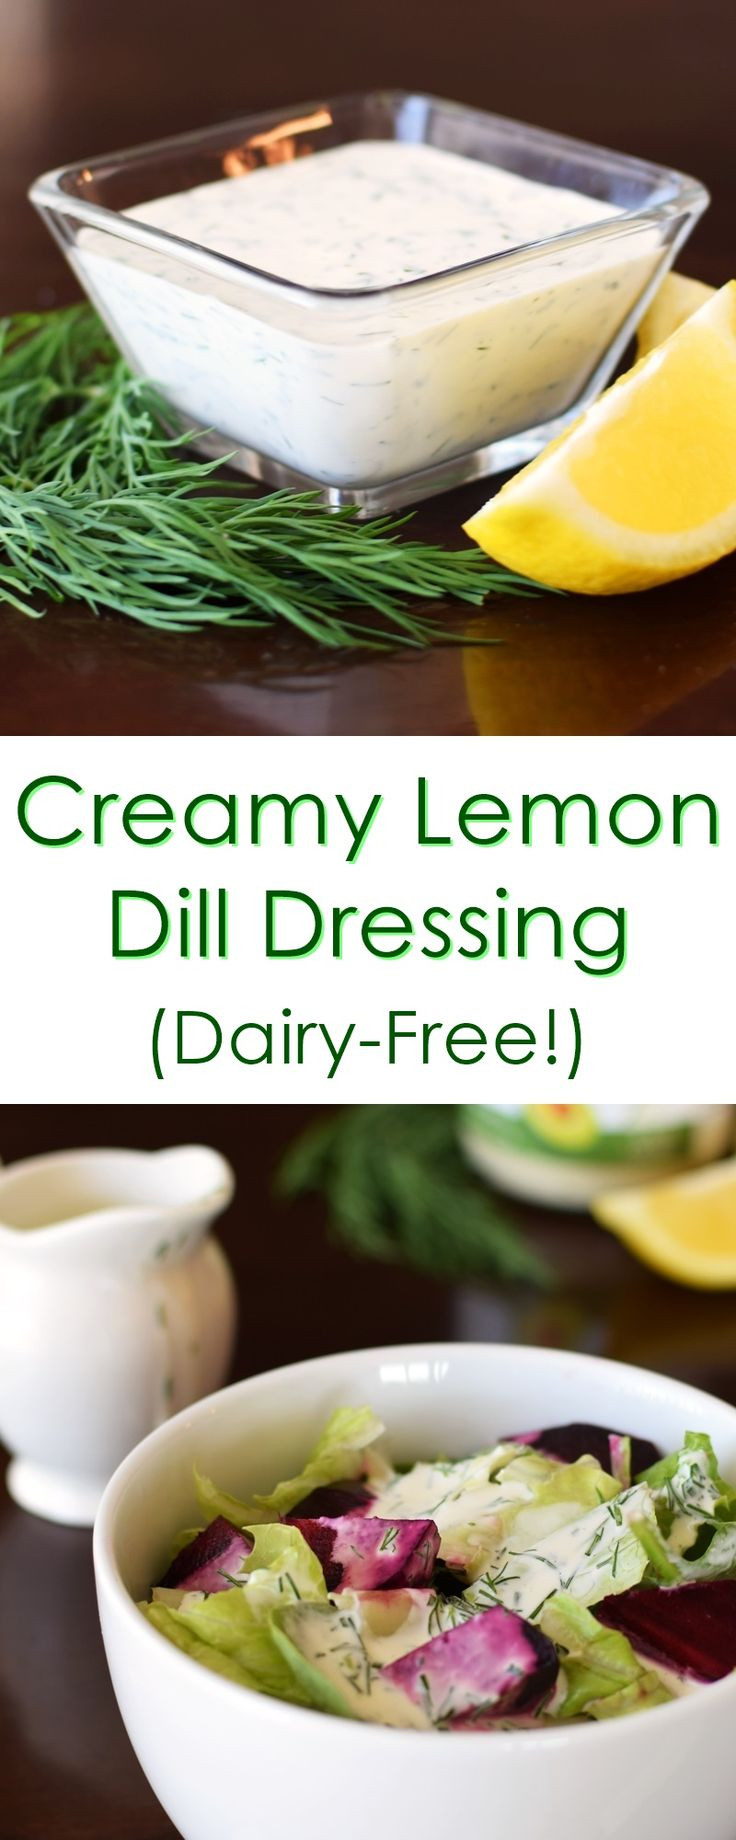 Dairy Free Salad Dressing Recipes  Creamy Dairy Free Dill Dressing Recipe